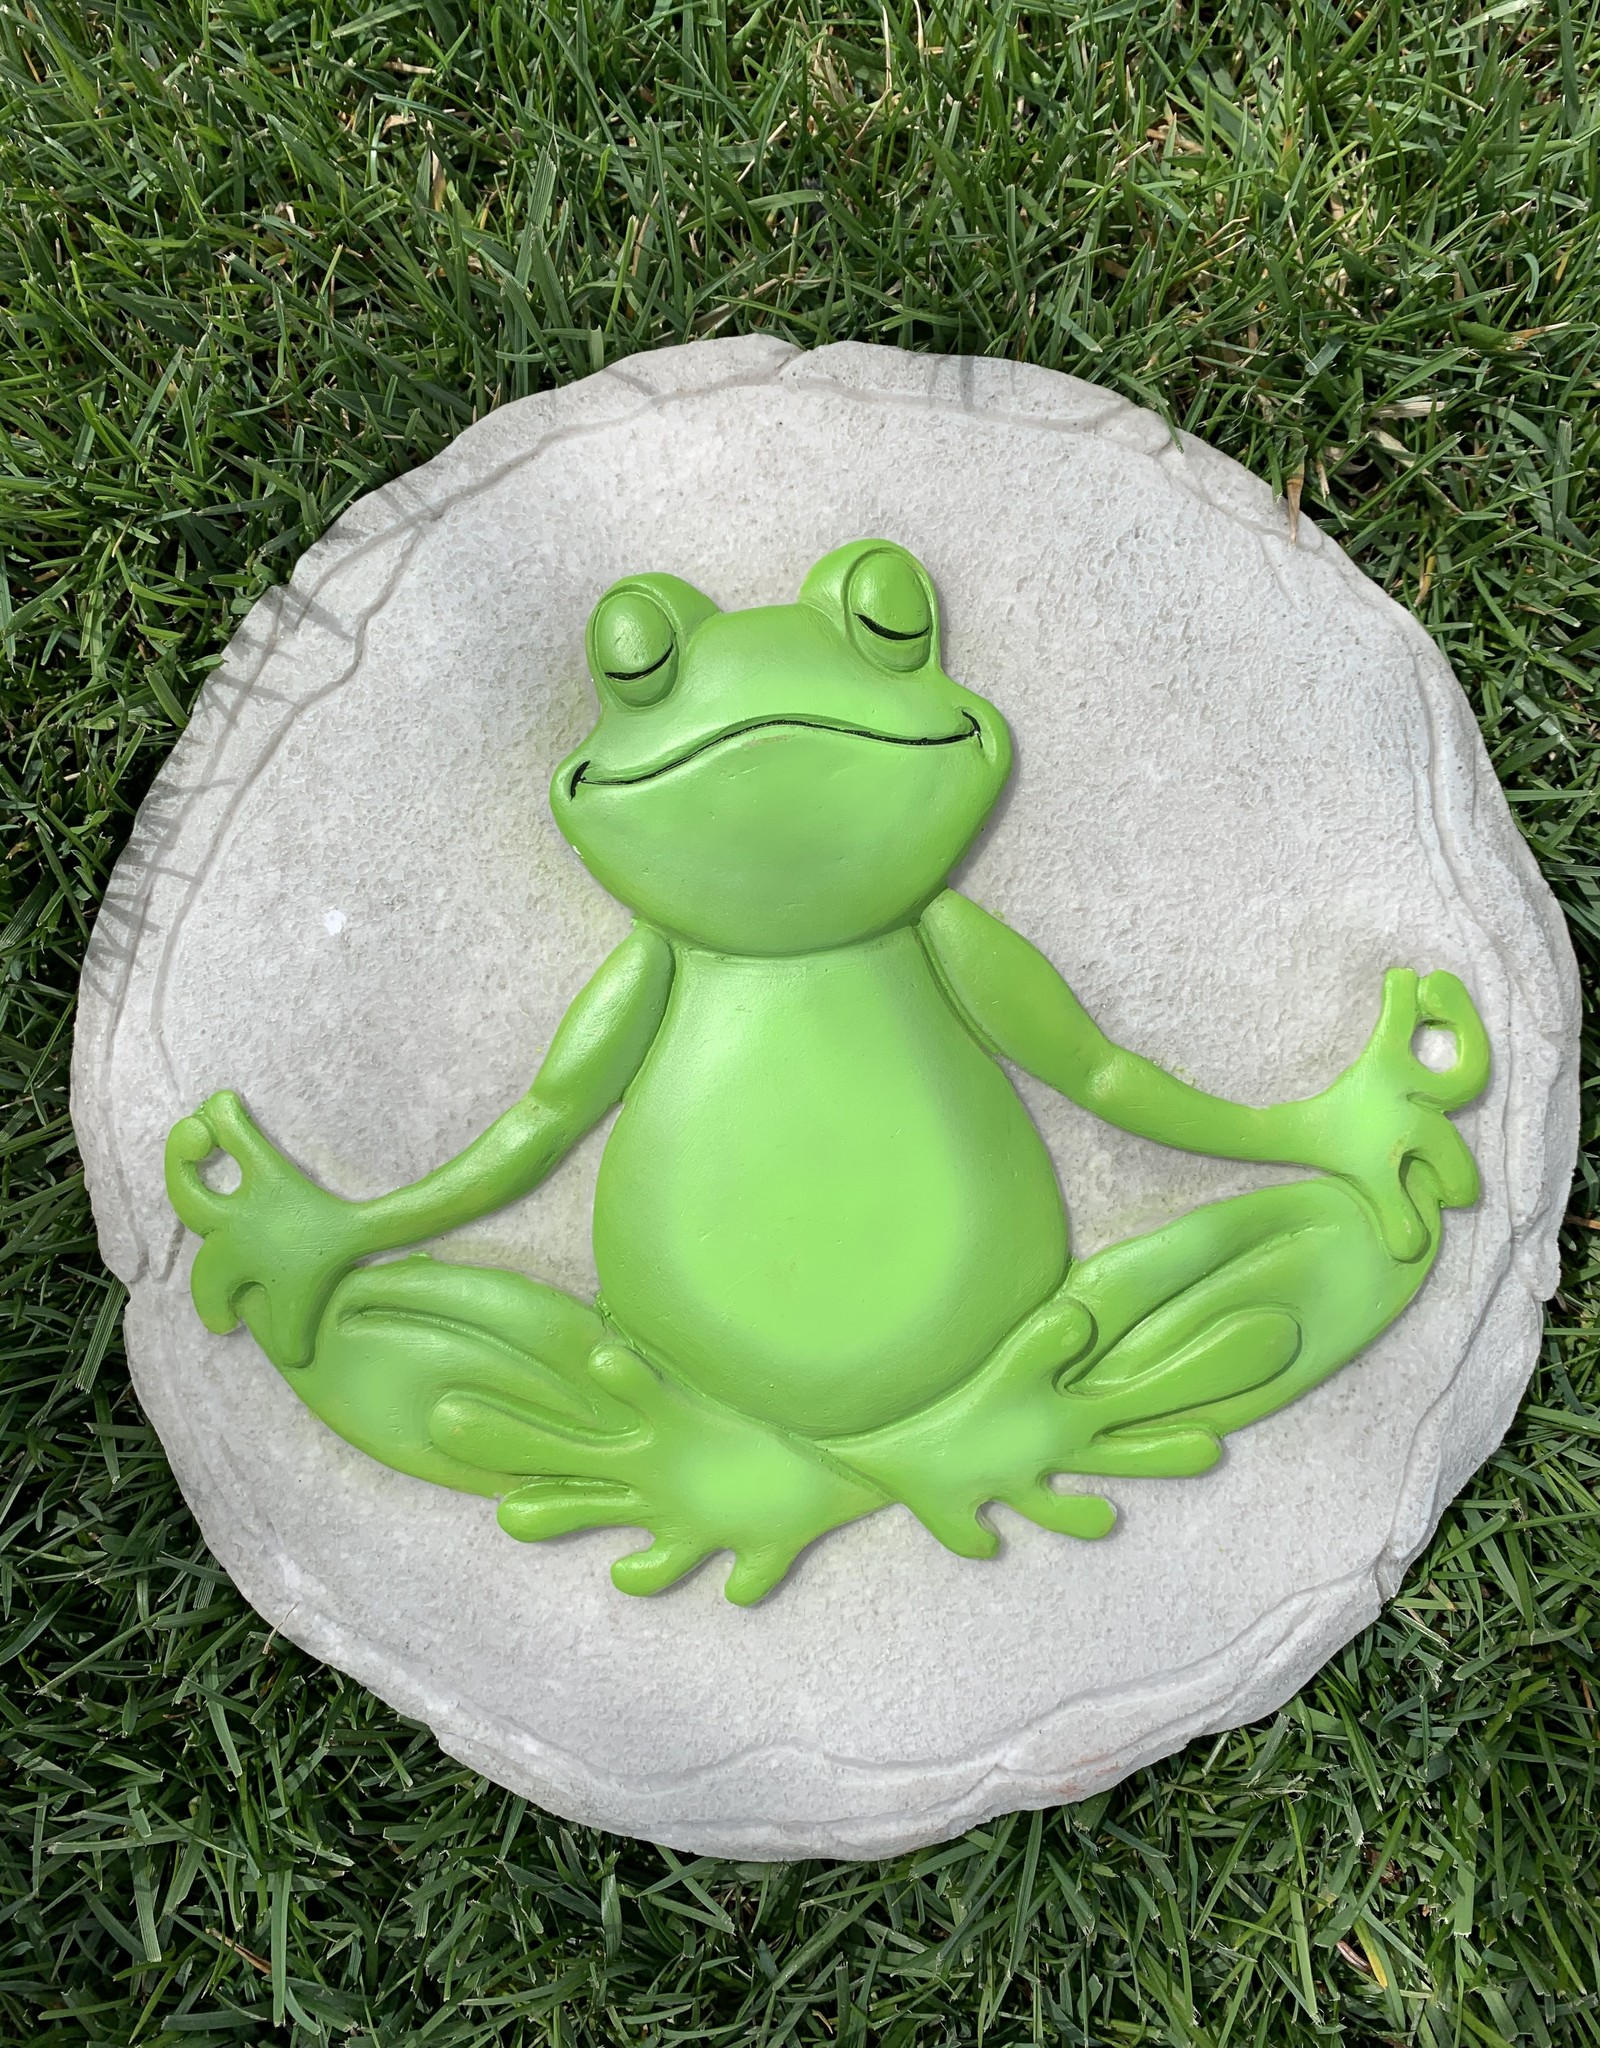 SPOONTIQUES, INC. NAMASTE FROG STEPPING STONE